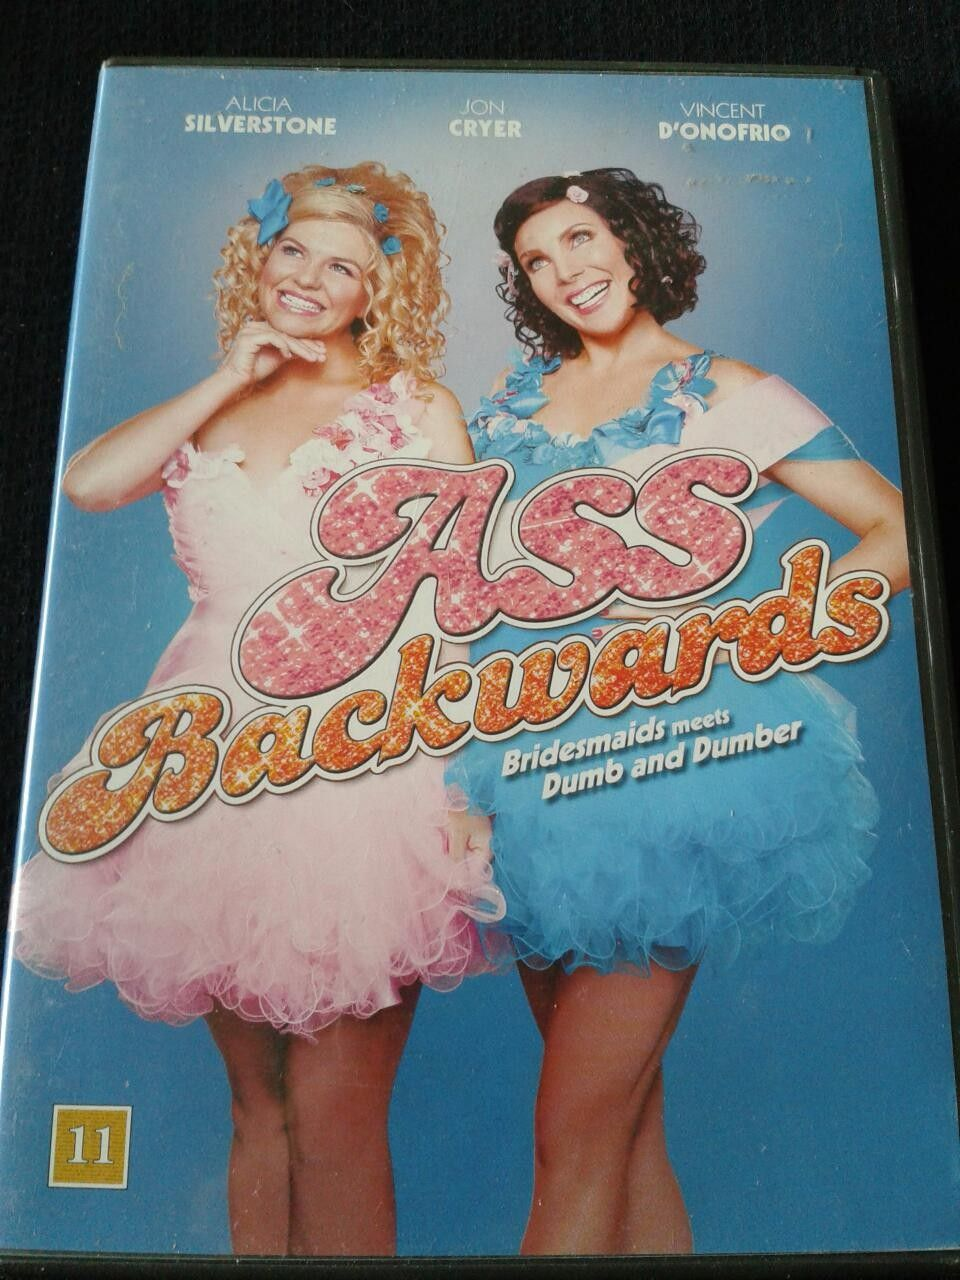 ASS BACKWARDS - Oslo  - Komedie med blant annet: Alicia Silverstone, Jon Cryer og Vincent D`onofrio. - Oslo